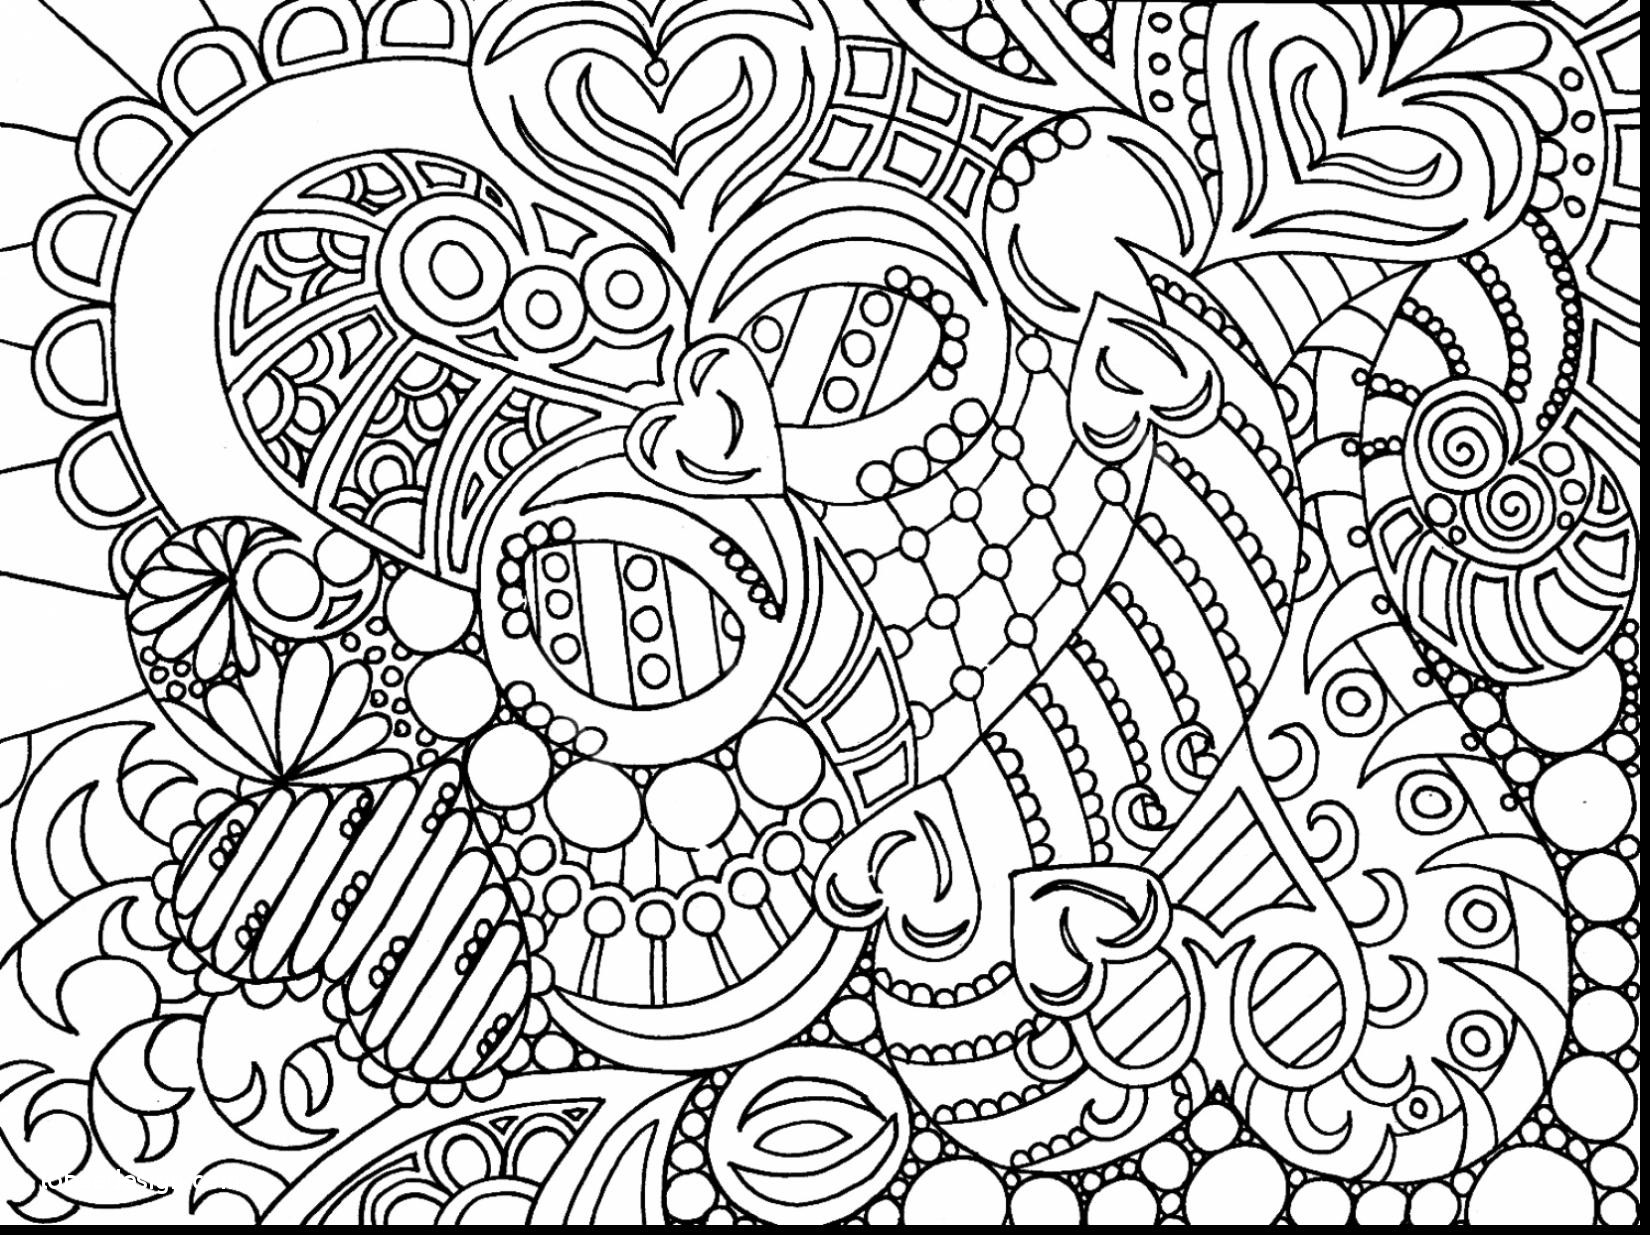 1650x1235 Authentic Teenage Coloring Pages Detailed